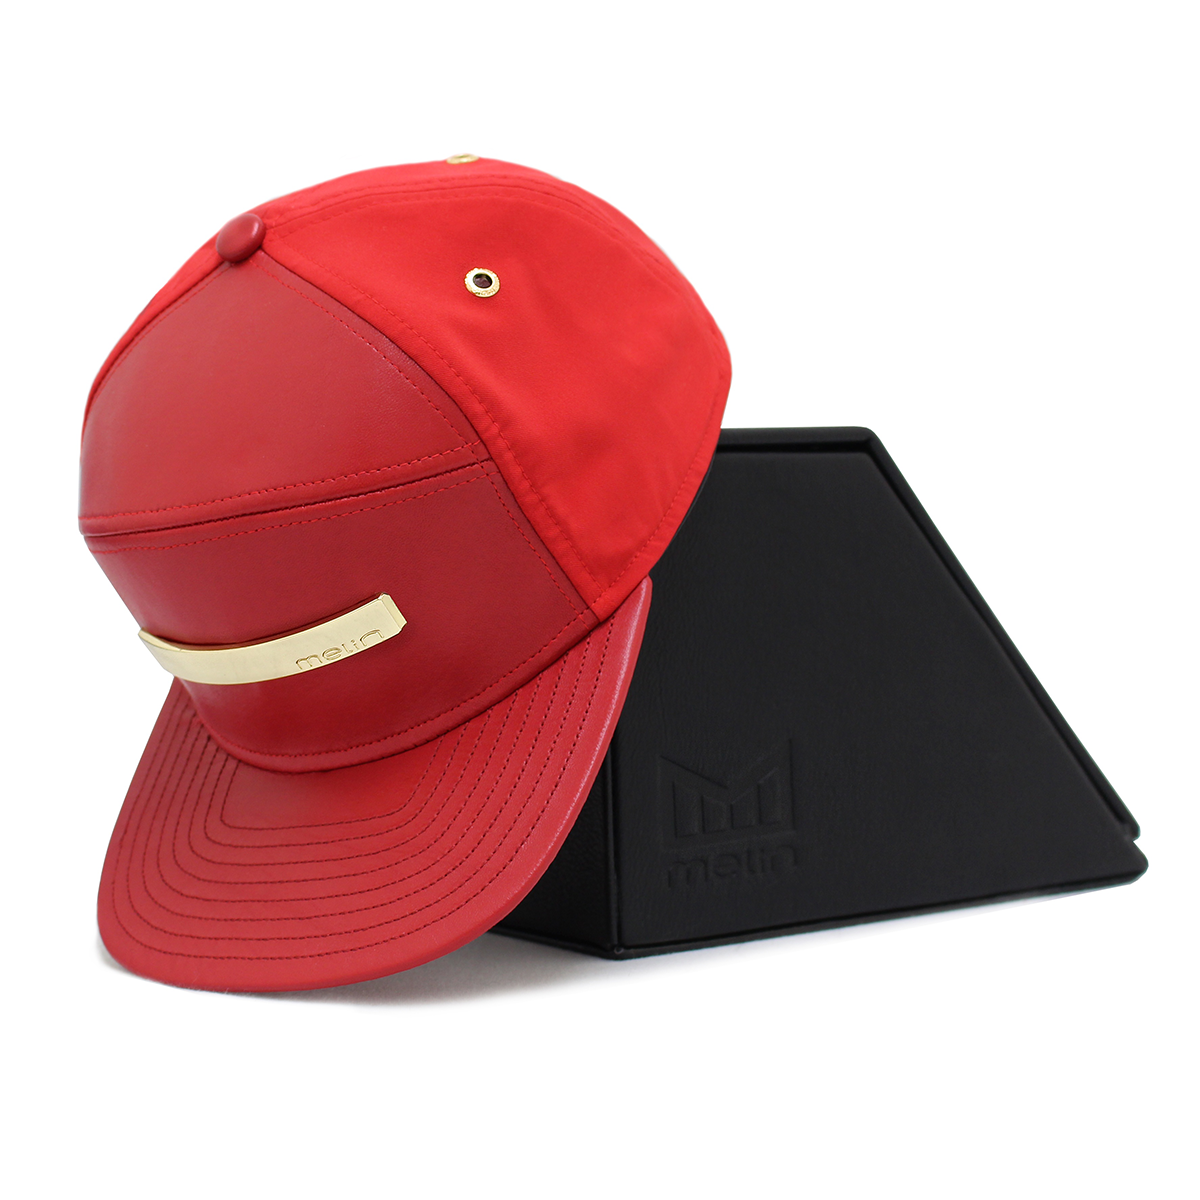 The Bar Shop Luxury Hats Leather Hats Leather